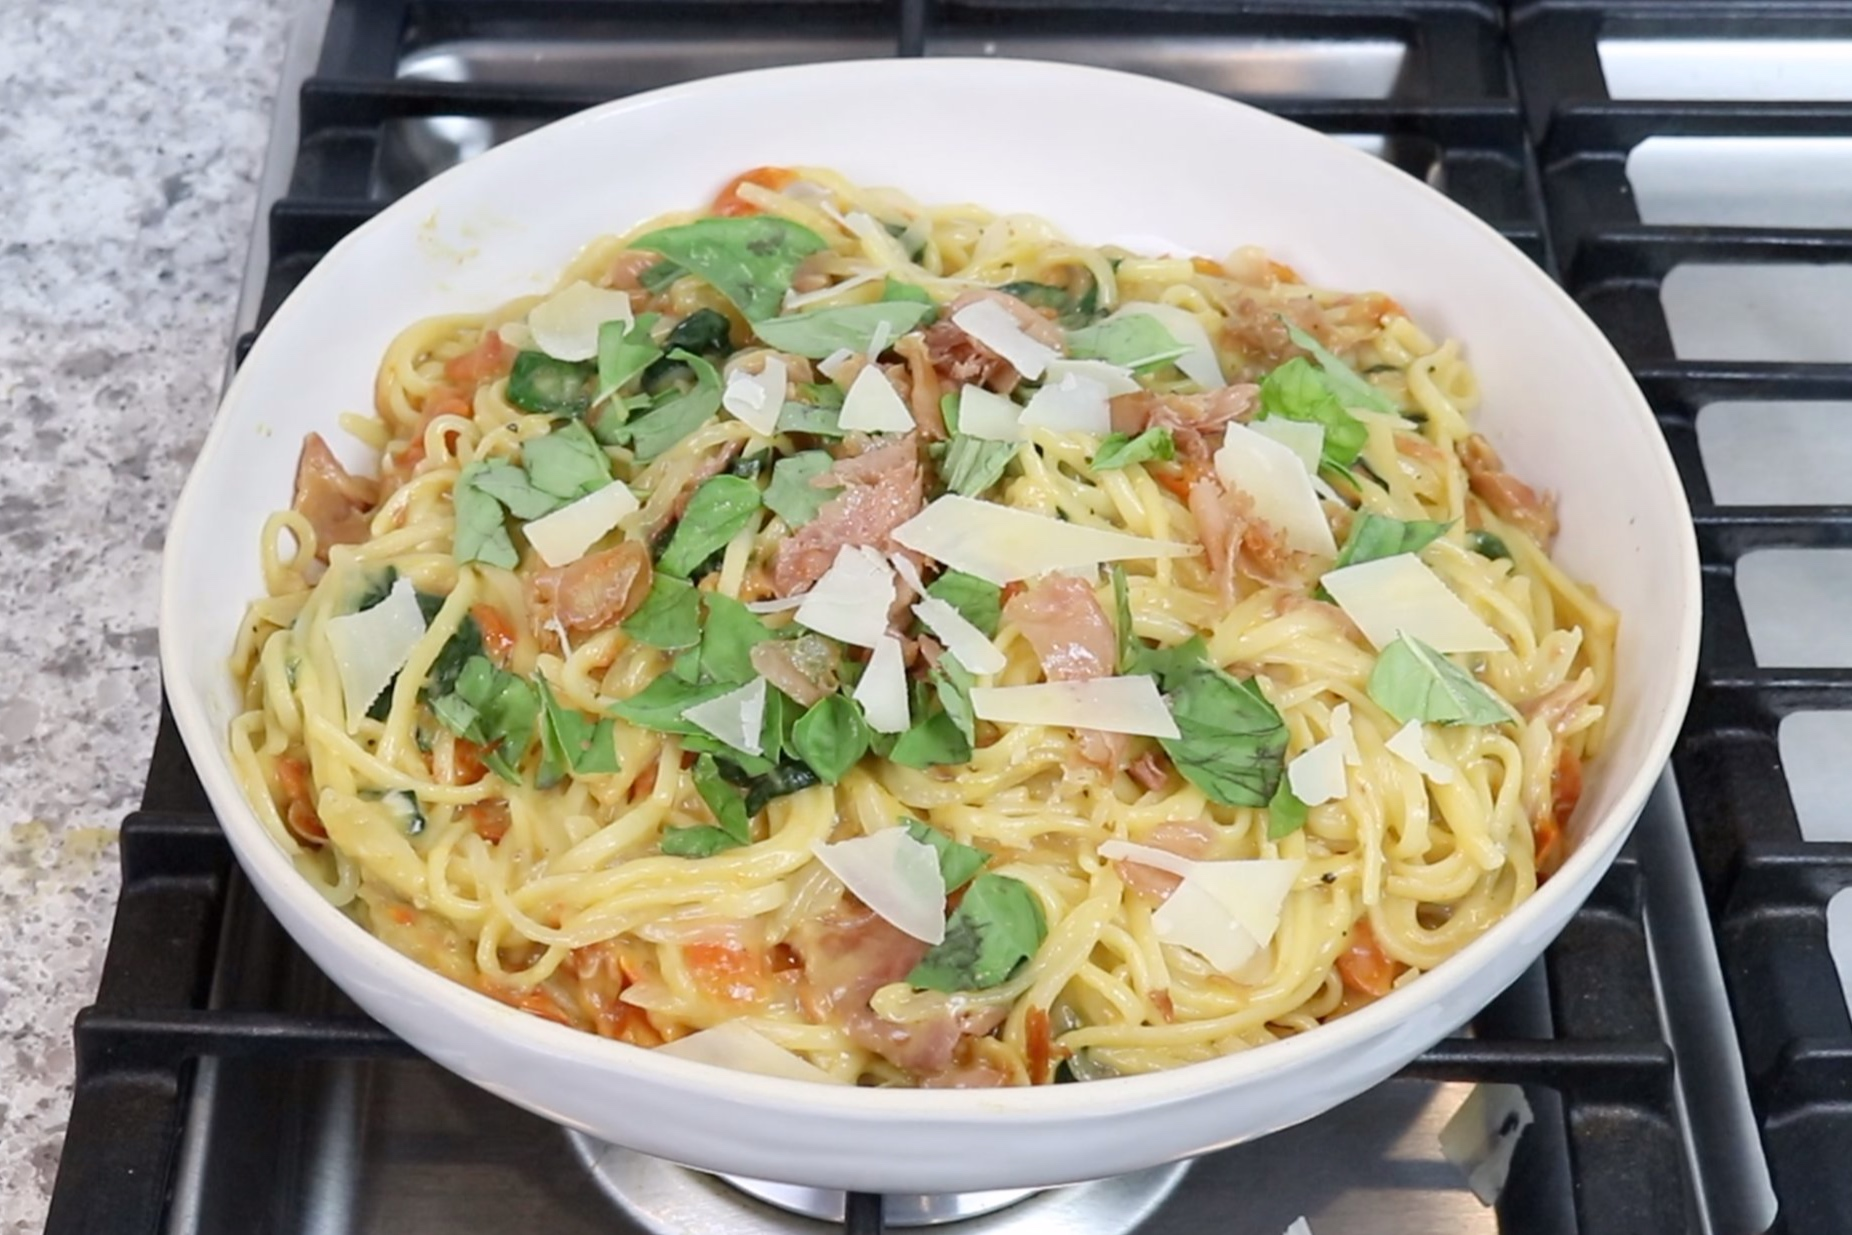 6. Remove from heat and stir in crumbled prosciutto. Top with basil and Parmesan. Serve immediately. -